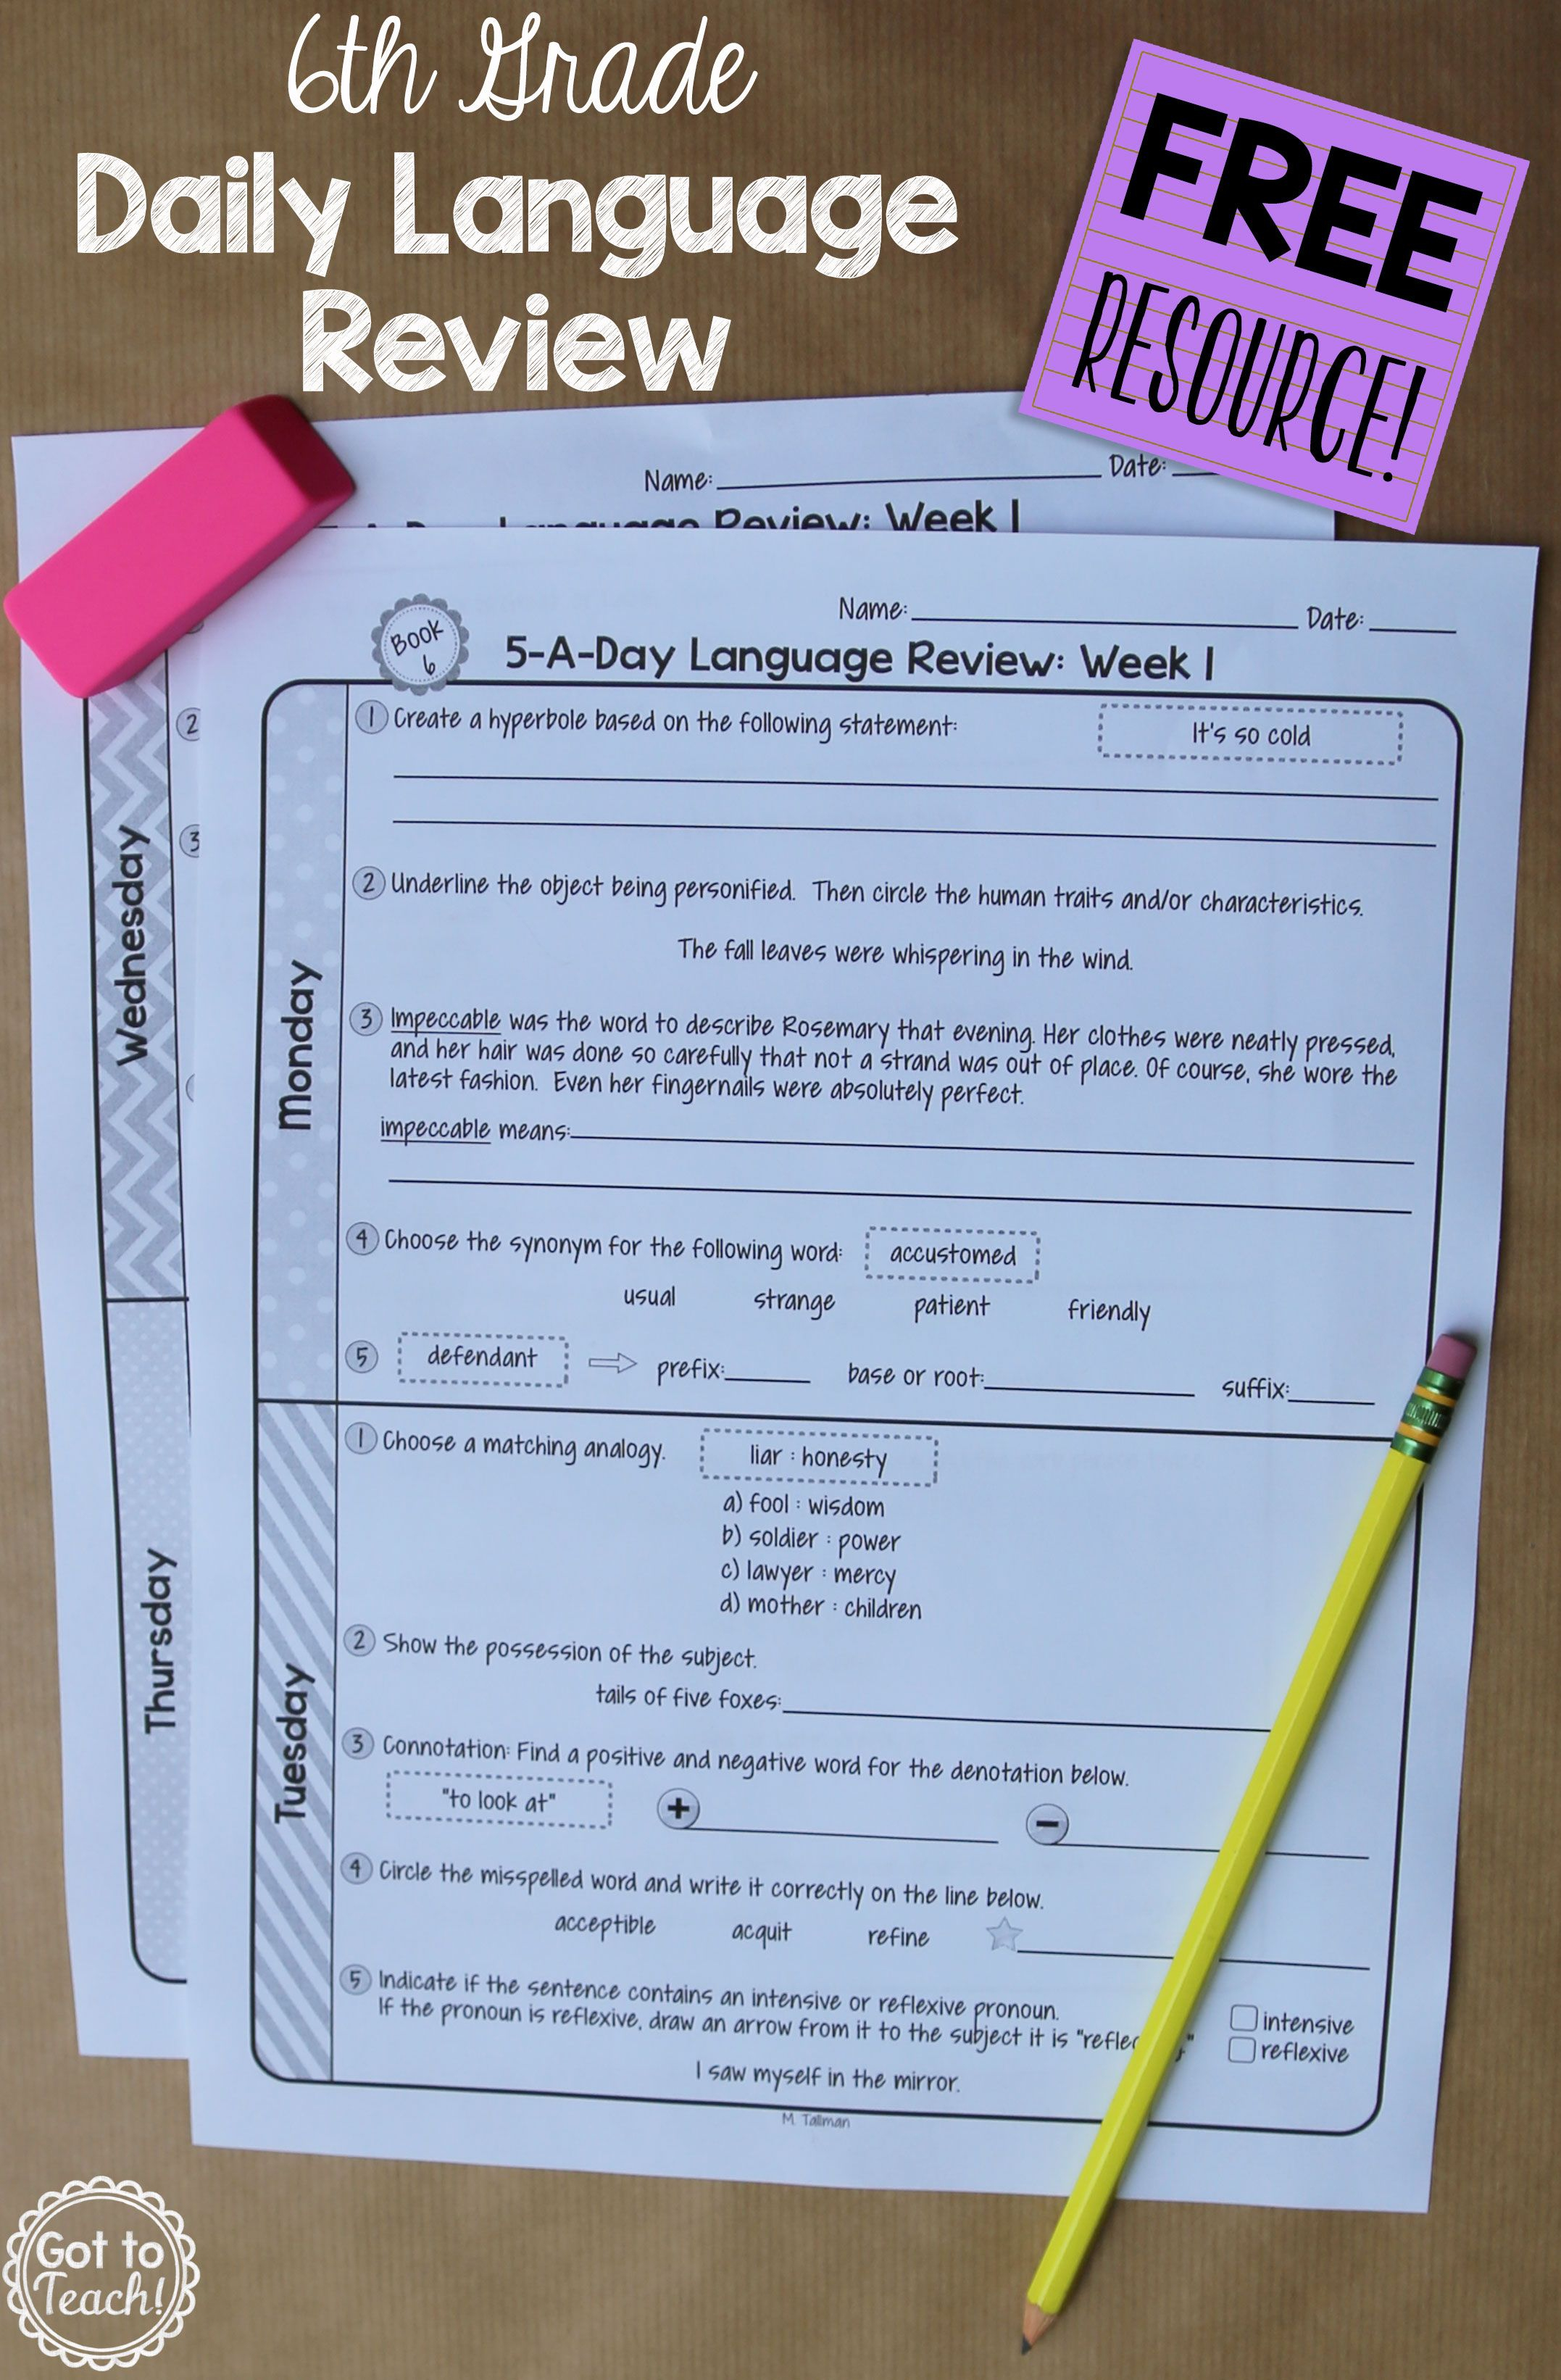 6Th Grade Daily Language Spiral Review - 1 Week Free - Daily Language Review Grade 5 Free Printable